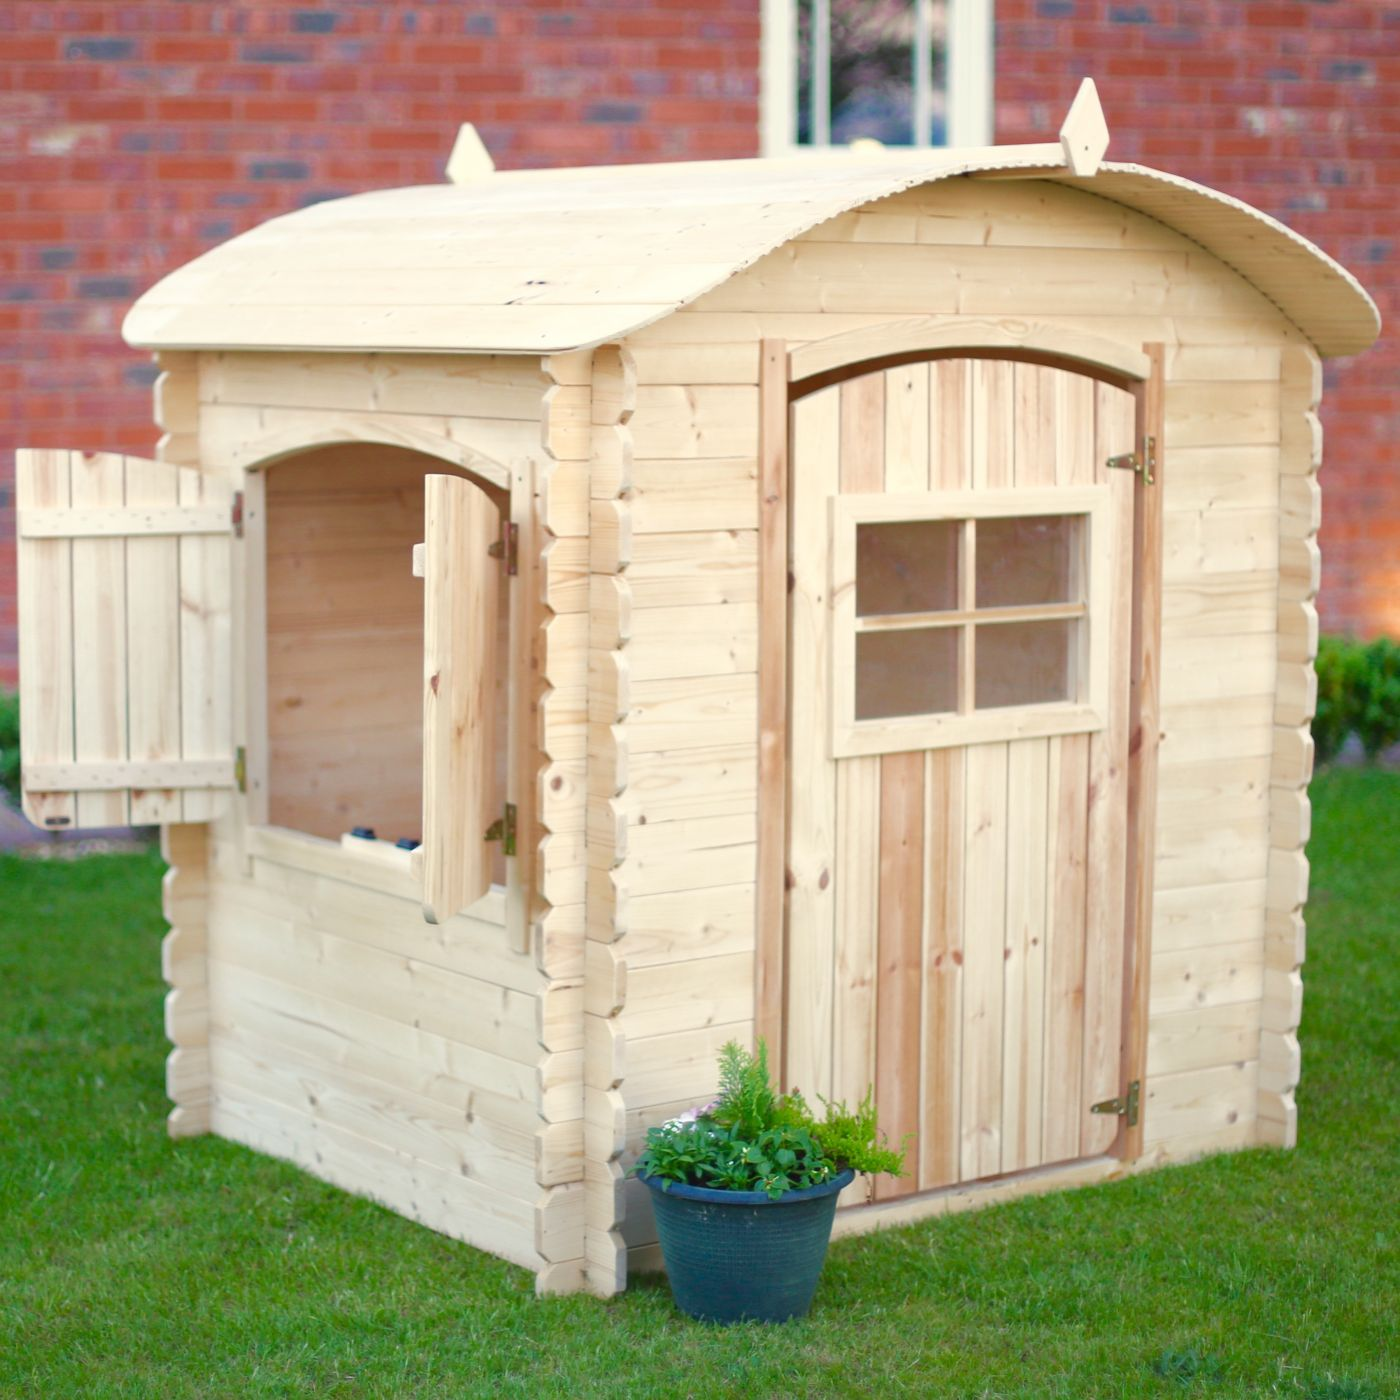 Rebo Bow Top Childrens Wooden Playhouse Log Cabin For Just 22995